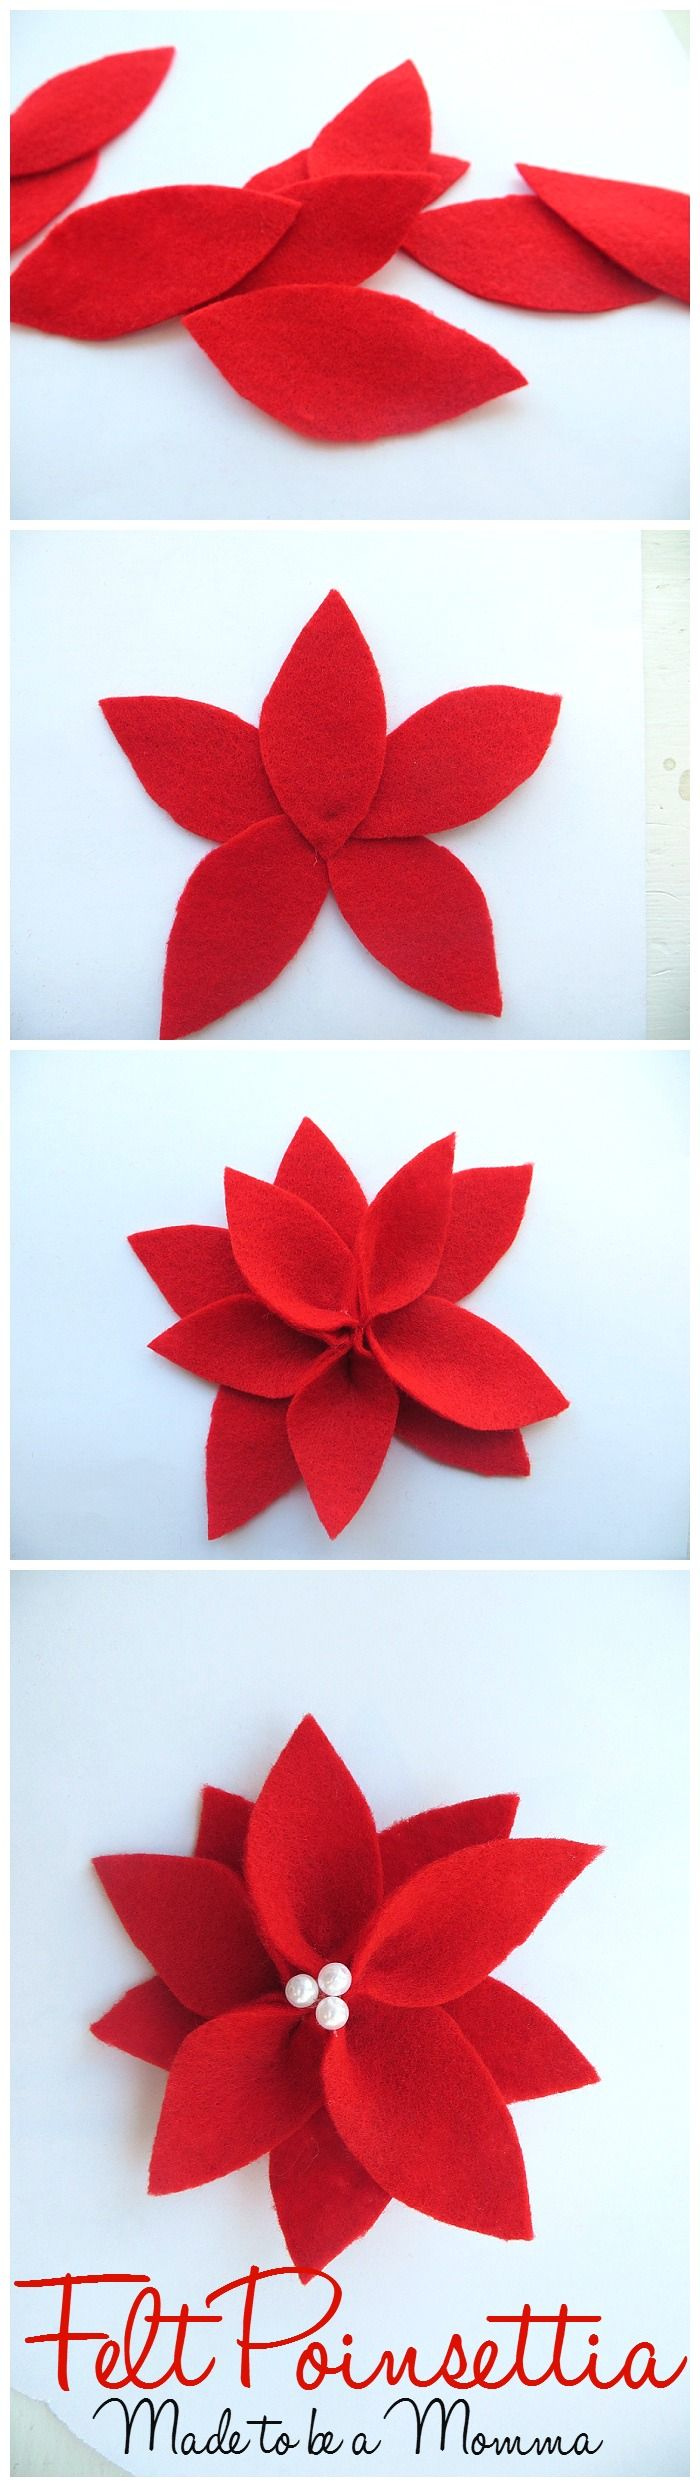 Love poinsettias for the holidays and beyond? These felt poinsettias from Made to be a Momma are a great way to create beautiful poinsettias that last forever. Click in to learn how to create your own.